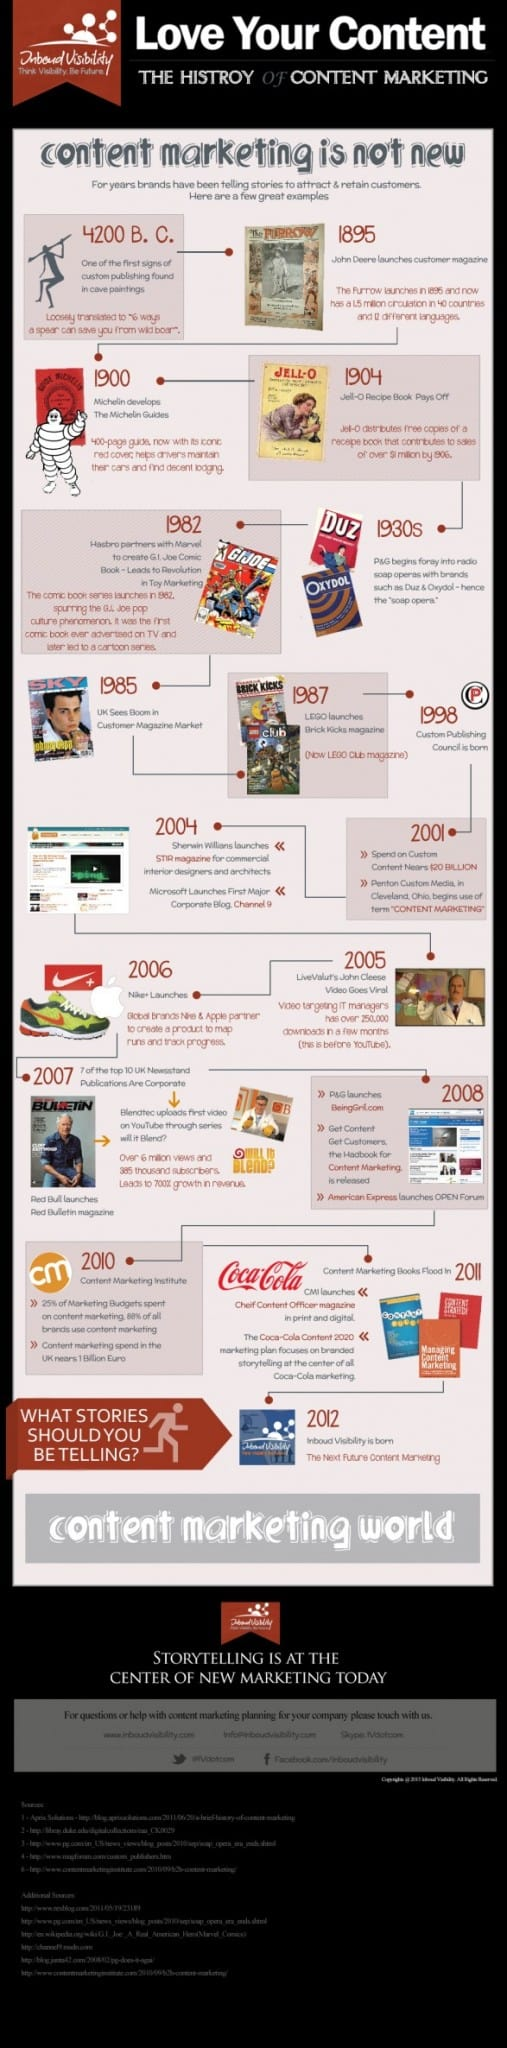 Content marketing geschiedenis infographic